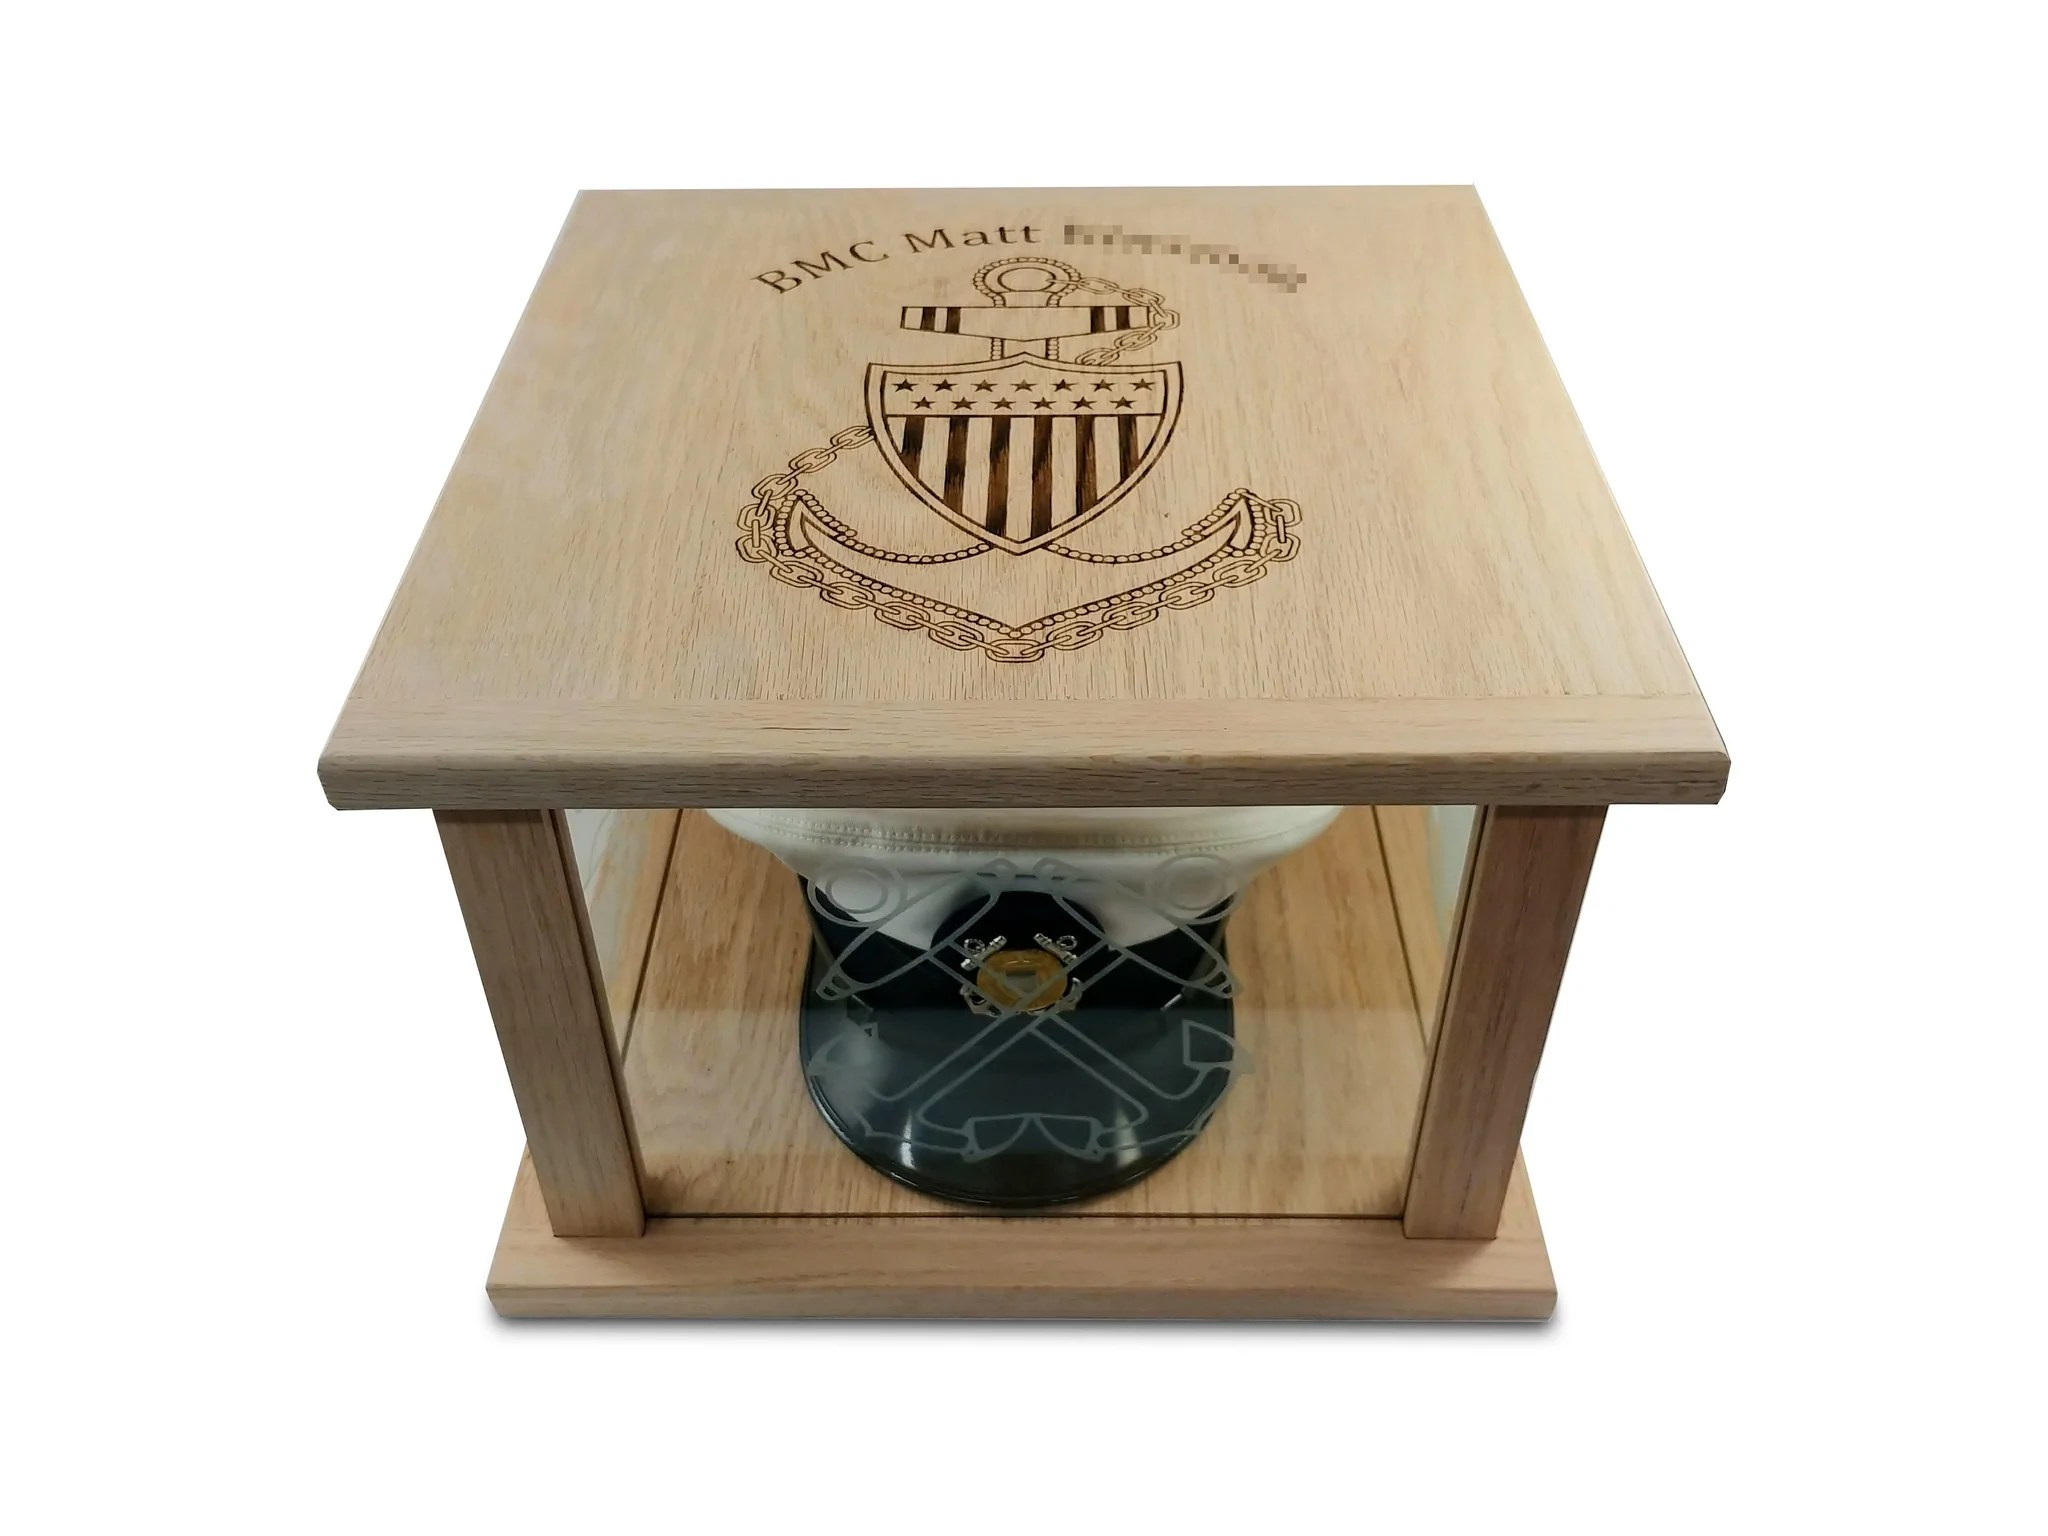 Ccti Hat Box Display Case For Navy And Coast Guard Chief Jonnychapps Mercantile